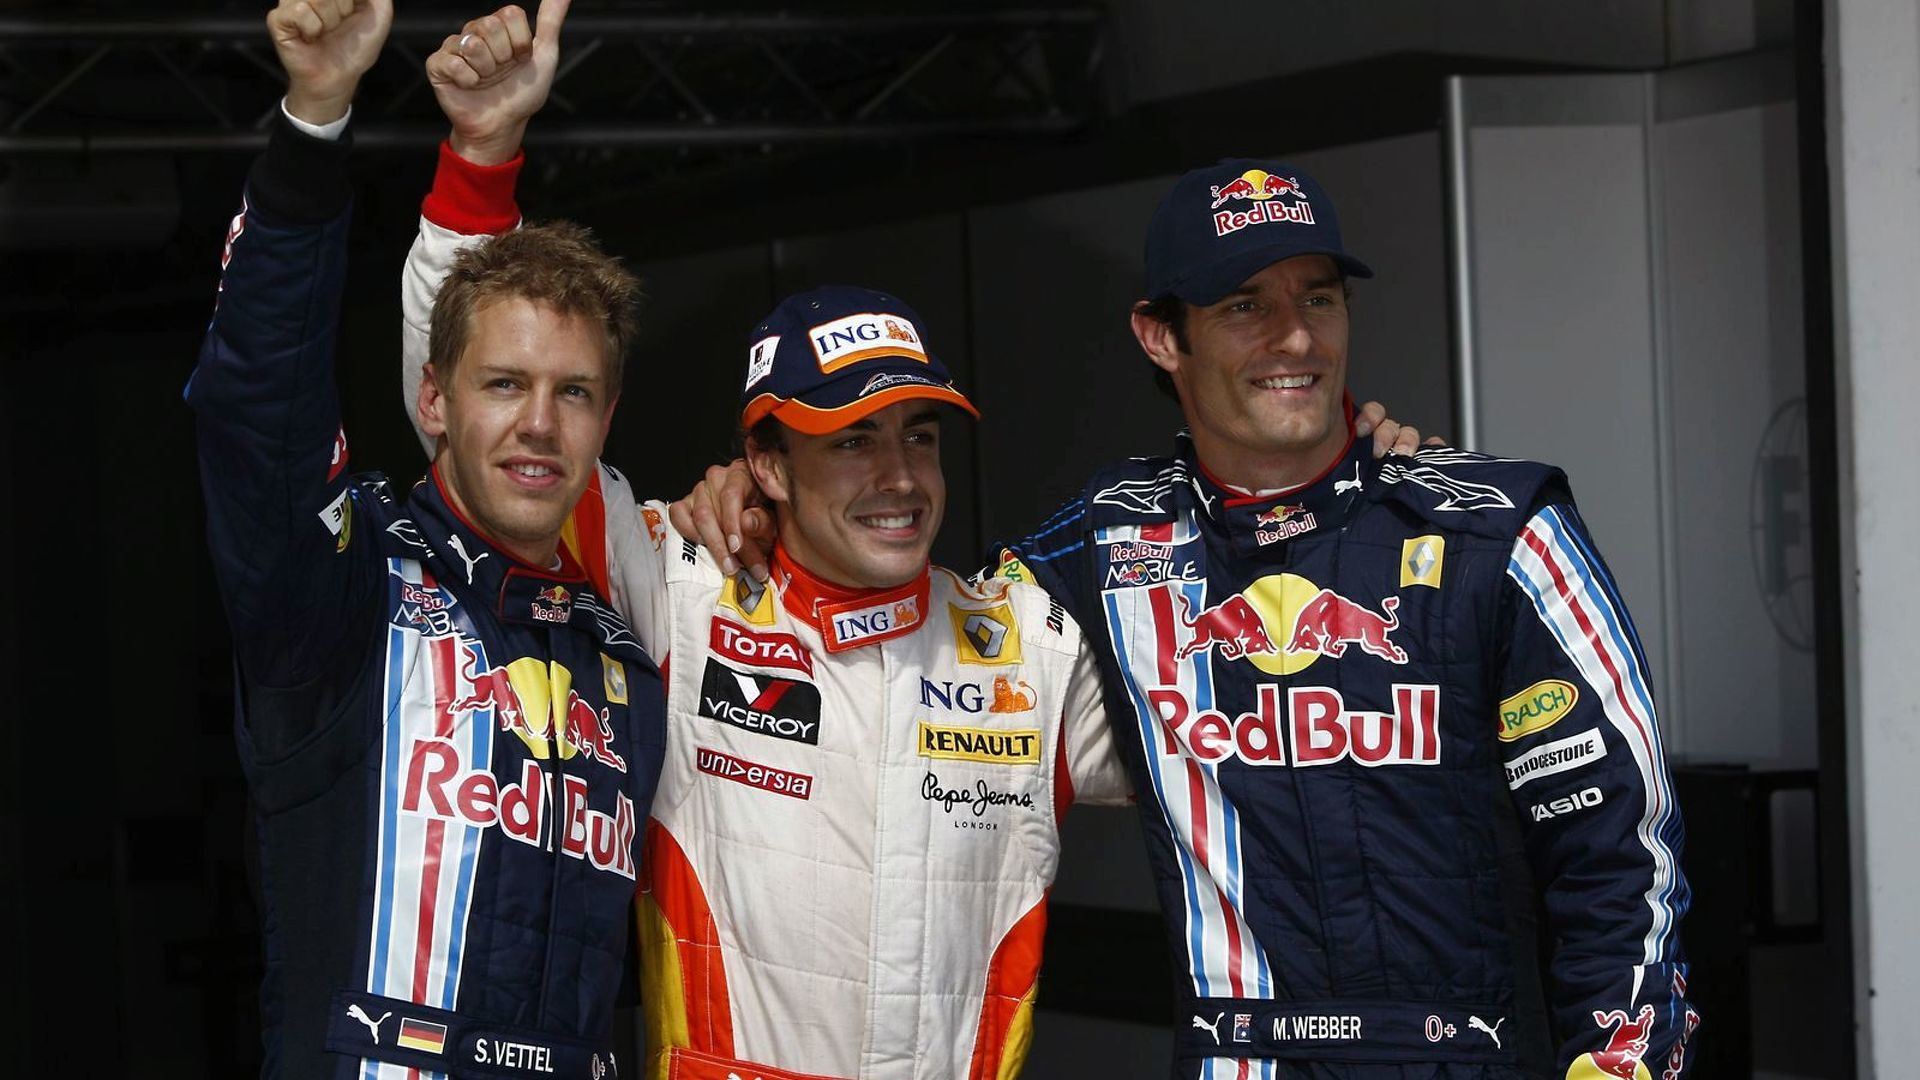 Hungarian GP 2009 qualfying results [Spoiler]